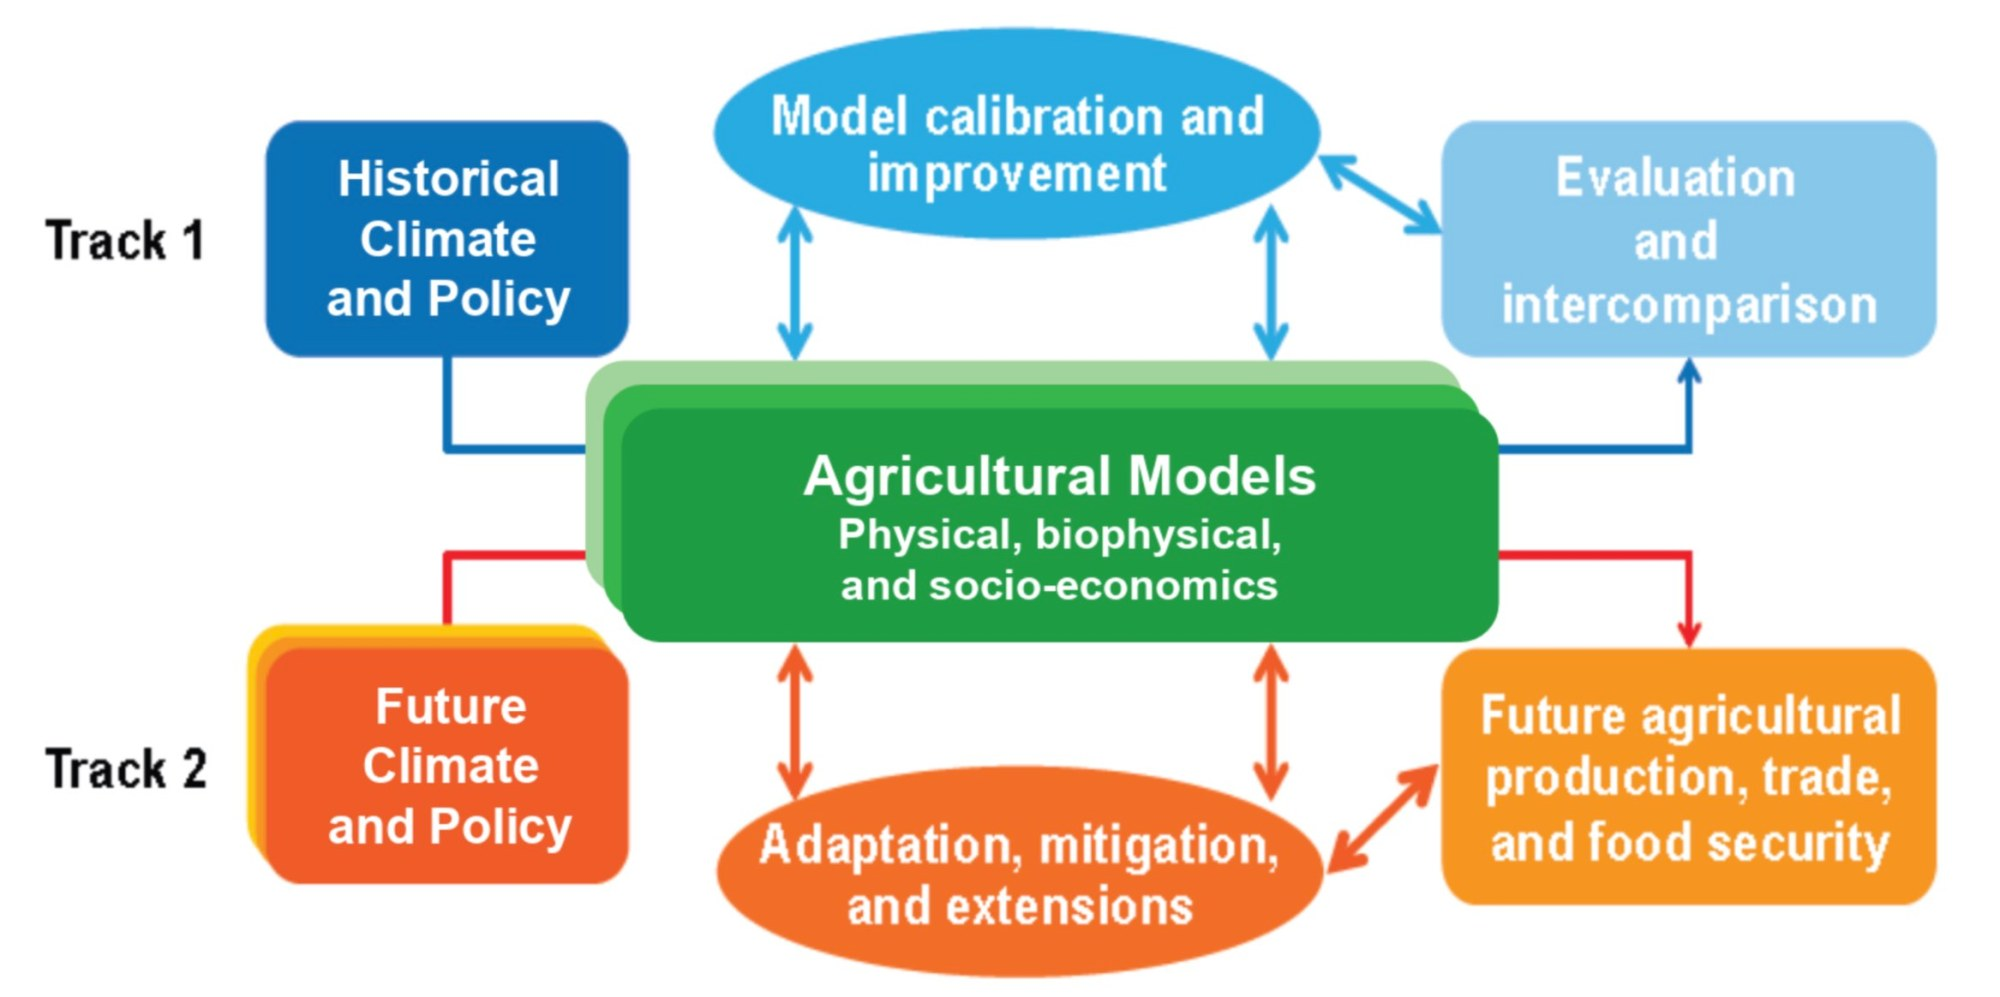 hight resolution of  rigorous science based evidence for stakeholder actions by incorporating a broader representation of key scientific advances and enabling the beneficial